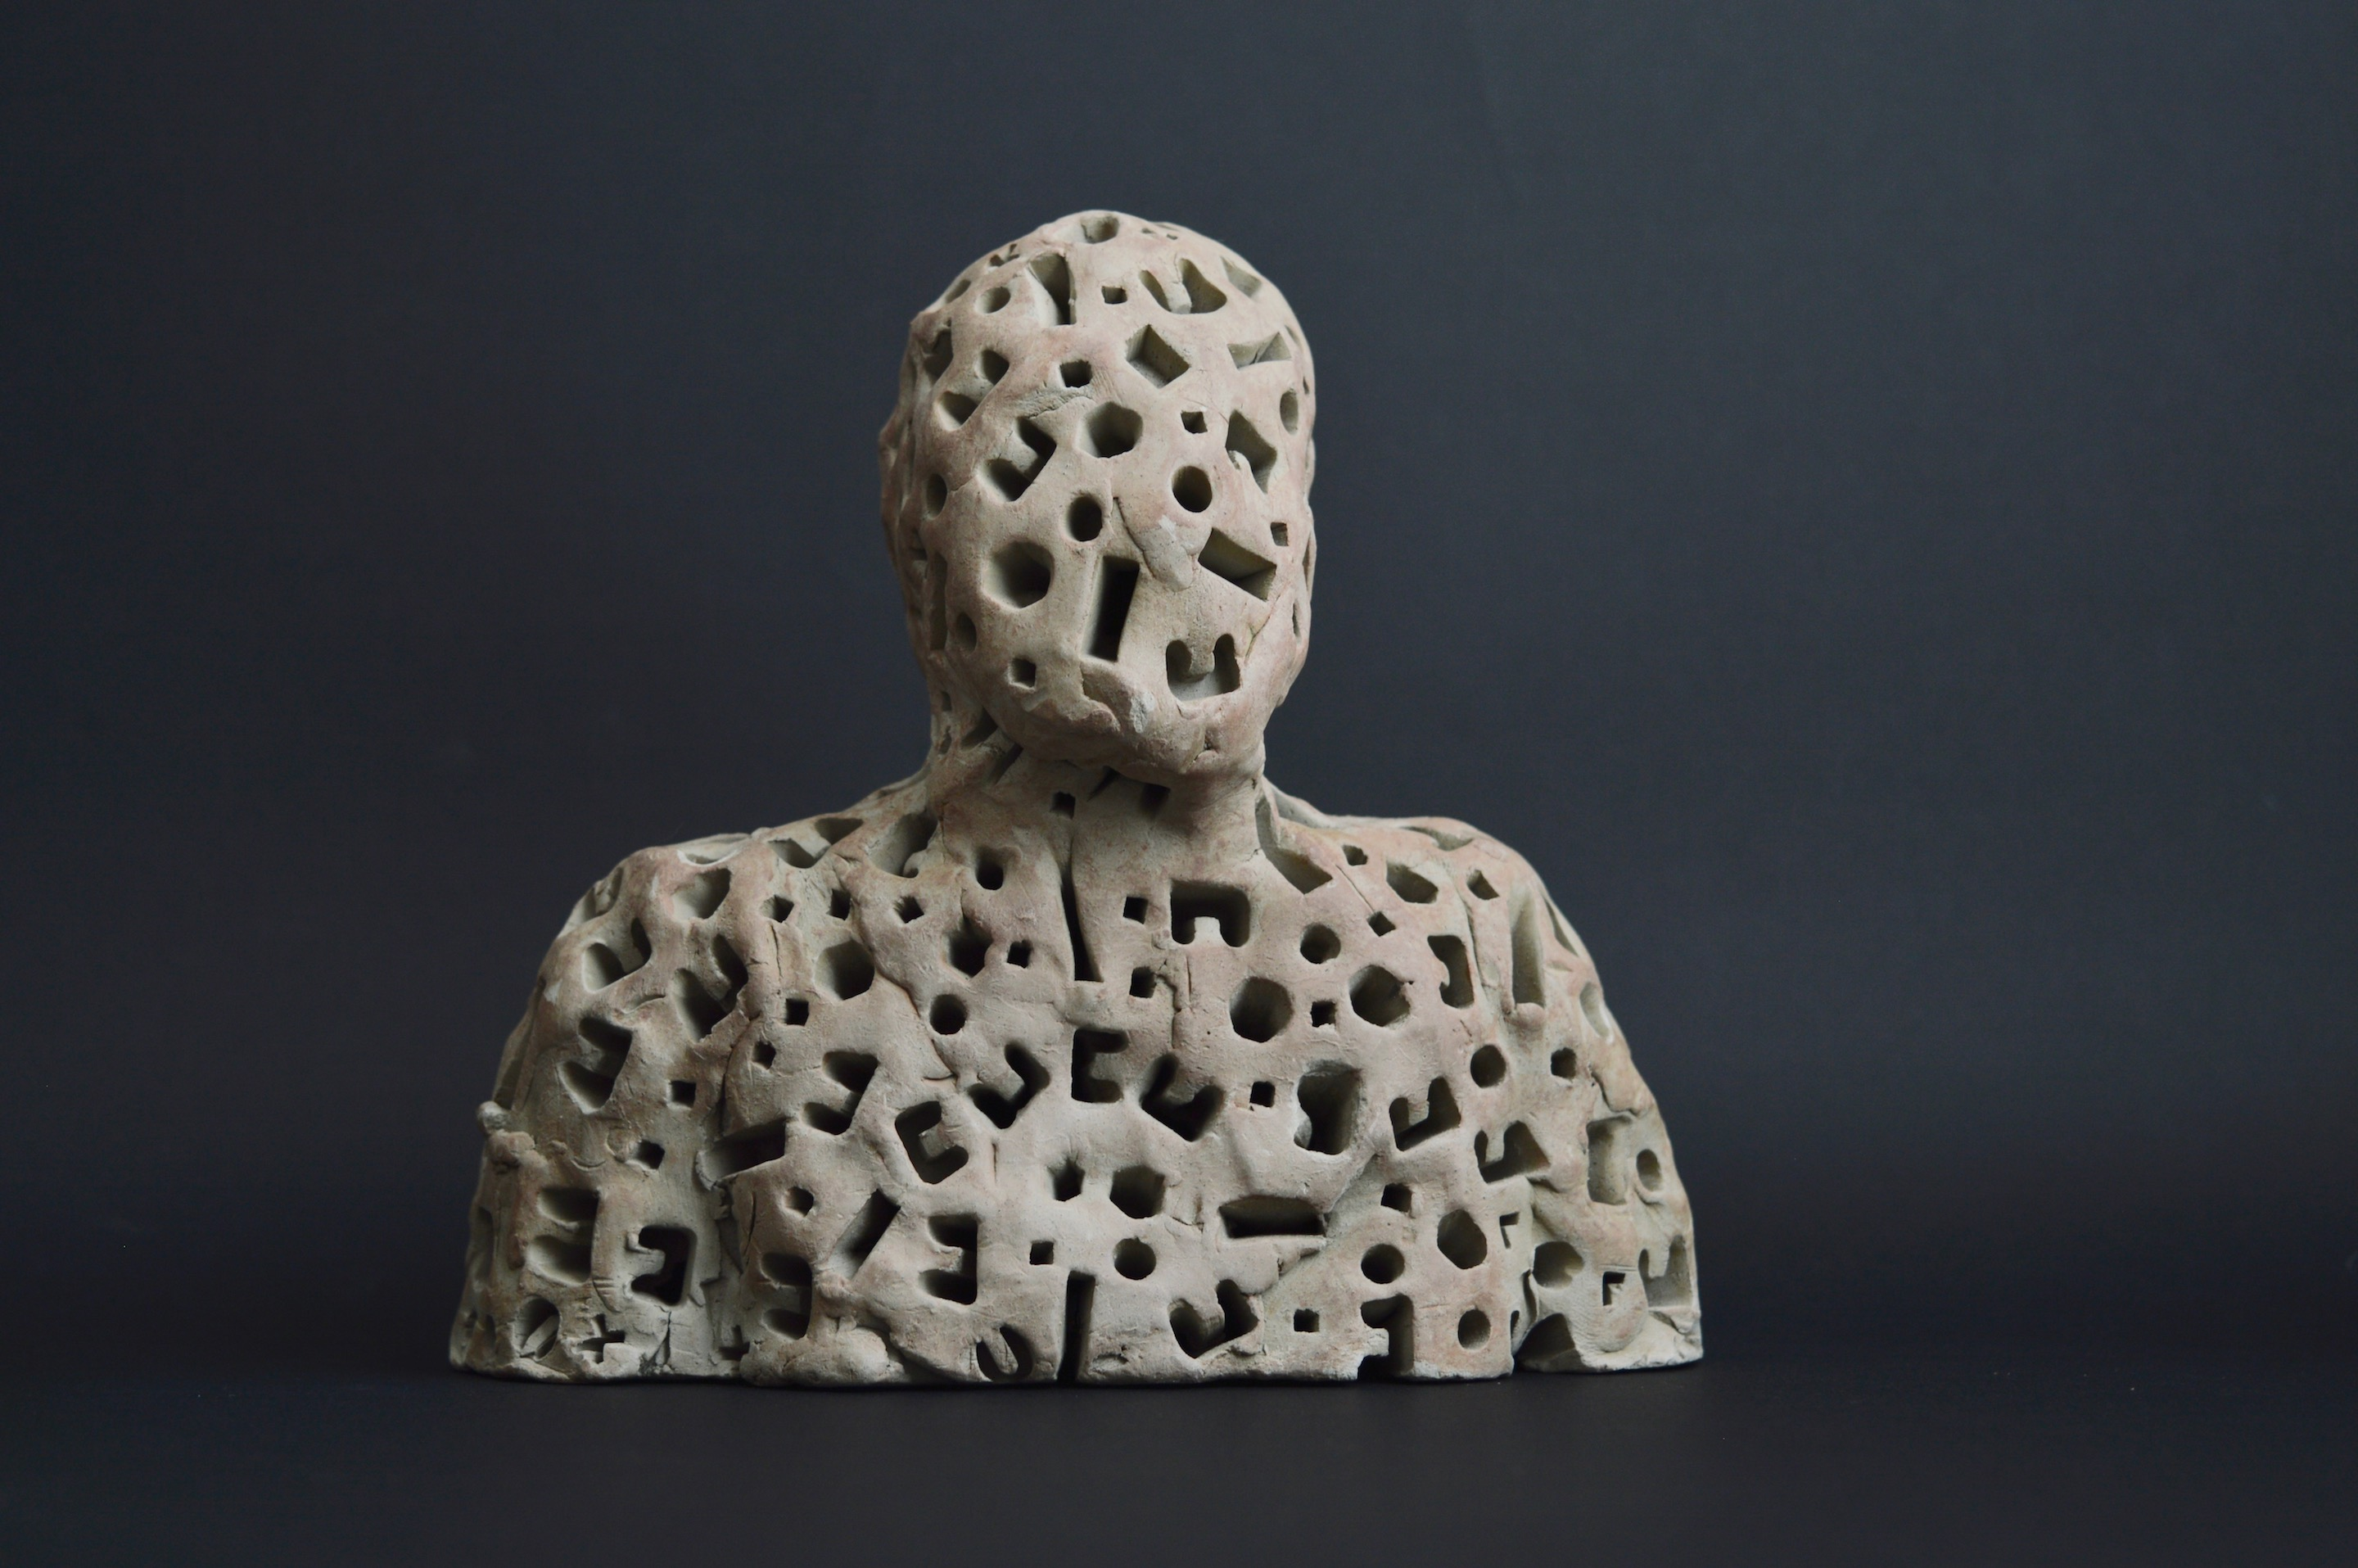 A semi-solid unfired buff clay figure 15cm wide which is part of a developing installation of 13 or more figures in glazed and unglazed terra-cotta, plaster and papier mache illuminated by LED lights on stands made of cardboard and mdf